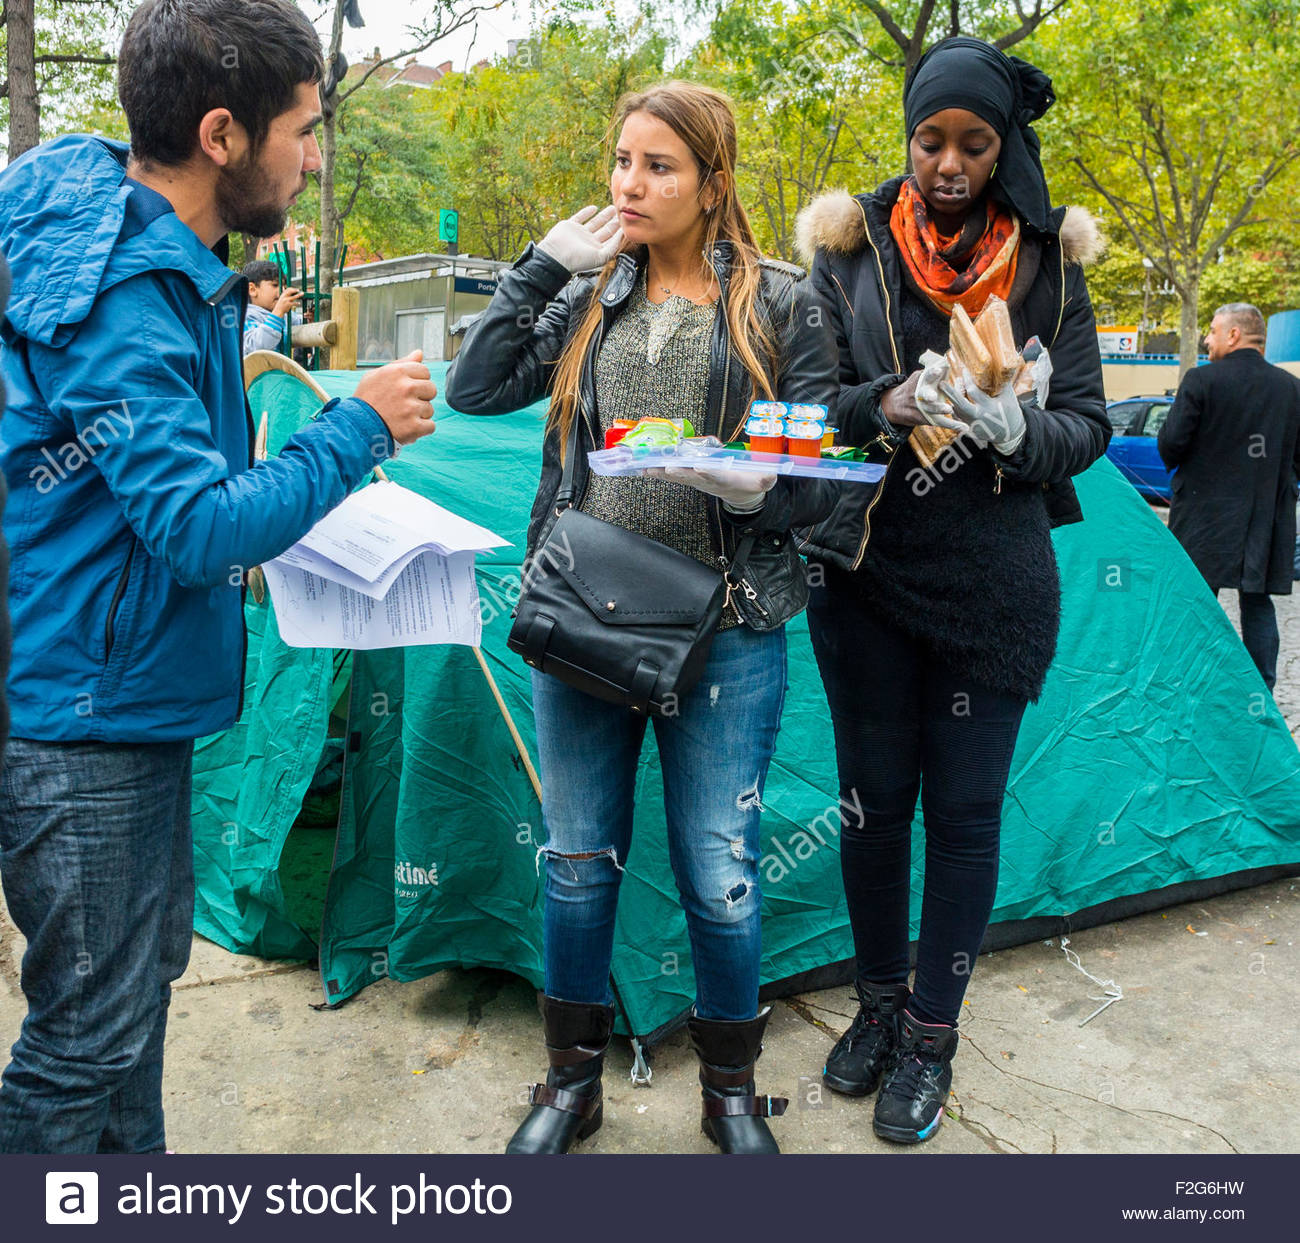 Paris, France. Group of French Volunteers serving food in Camp of Syrian Refugees, Migrants, at 'Port de Saint - Stock Image